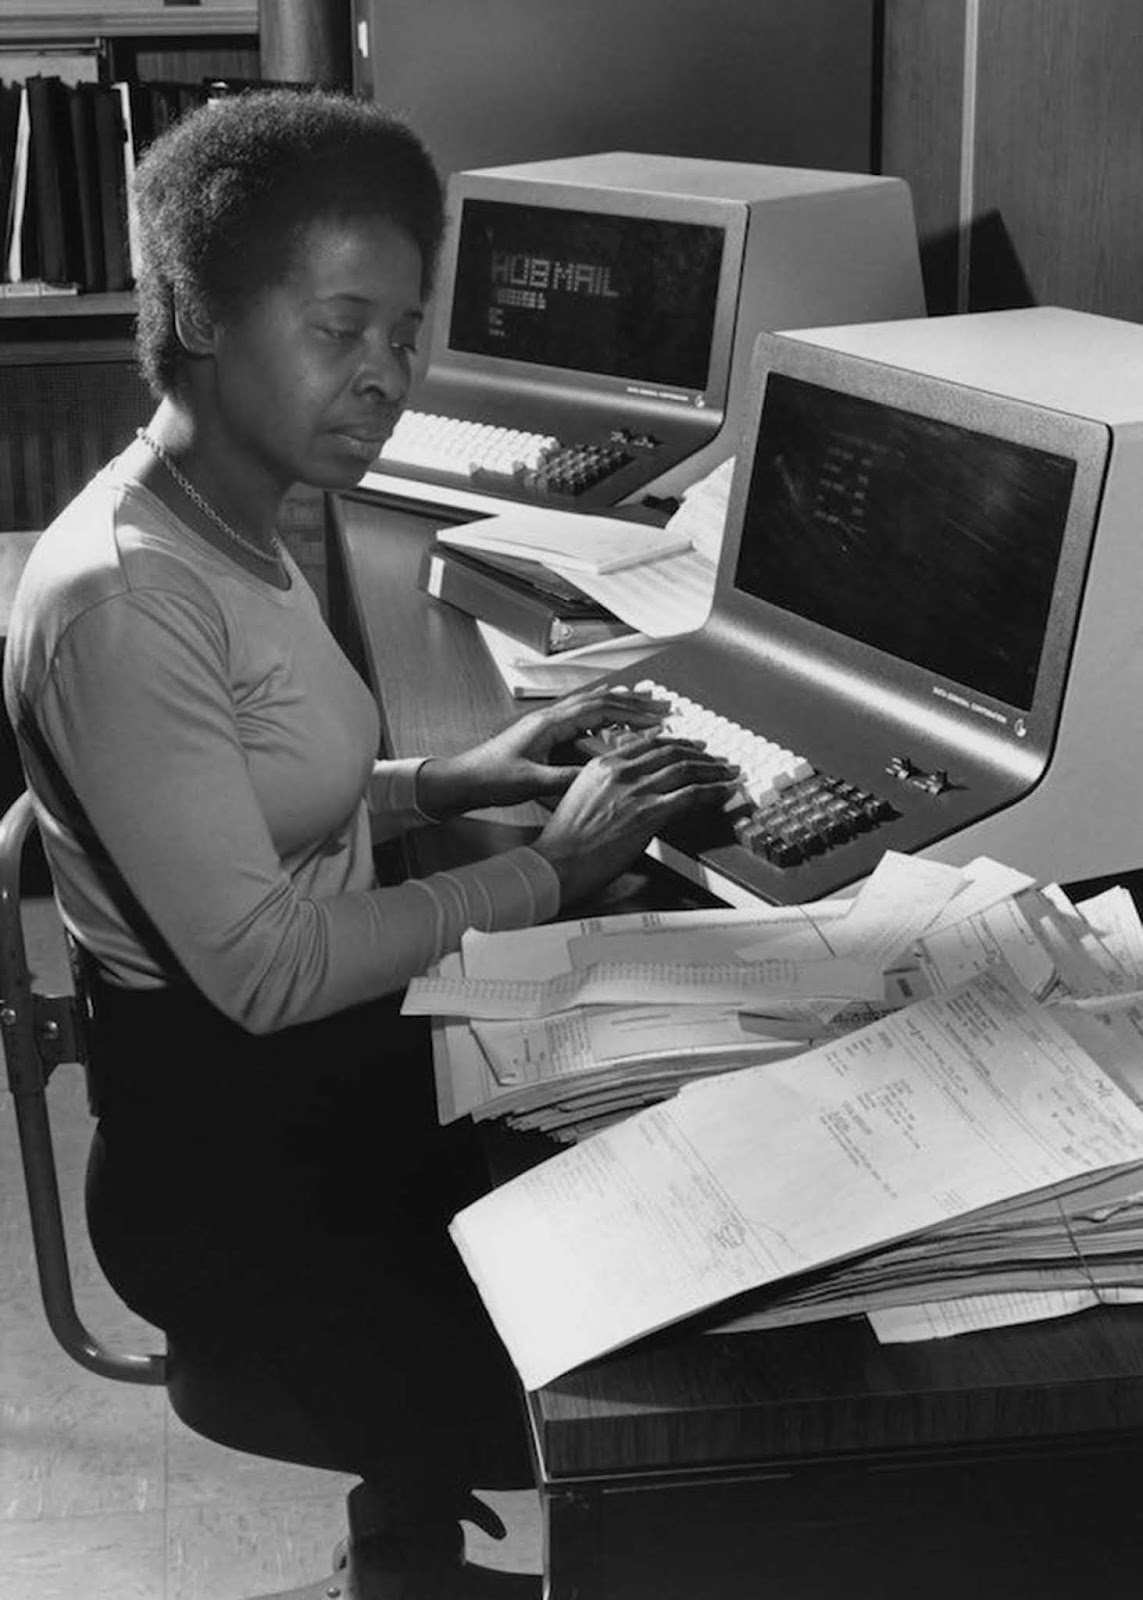 An office worker logs addresses into a Data General computer at a direct-mail company in Boston, Massachusetts. She wears a knit, fitted top; her hair is naturally styled and worn short. 1980.